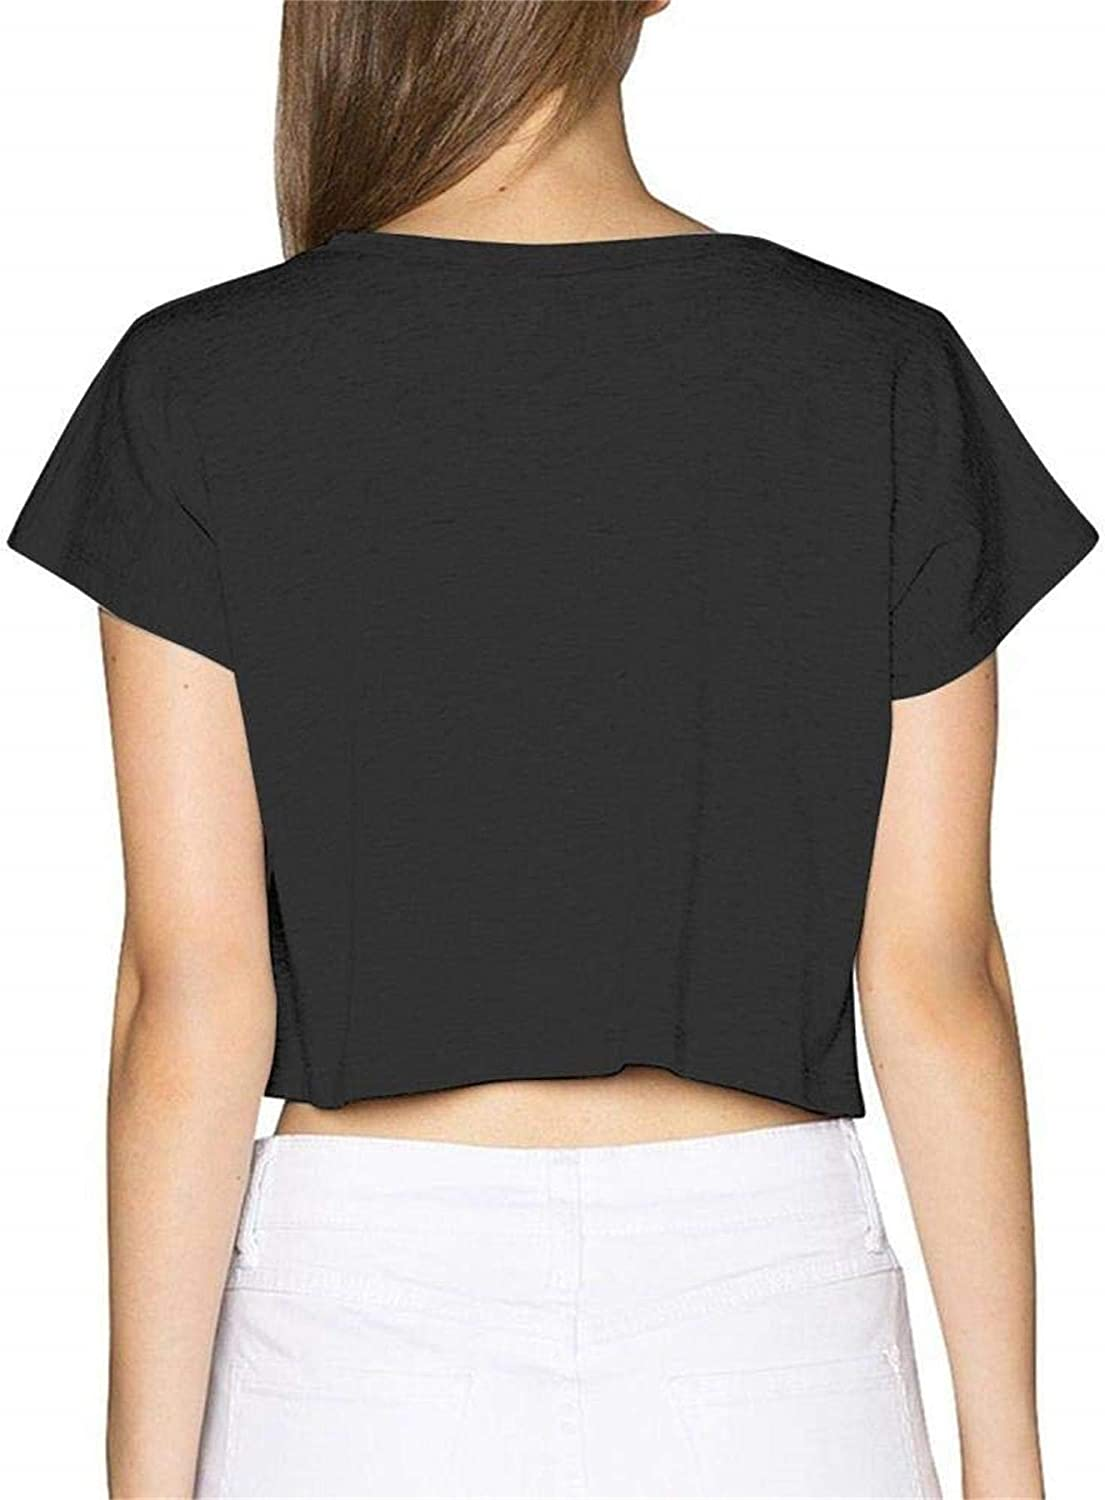 Seuriamin The Pretty Reckless Going to Hell Womens Simple Short Sleeve Leak Navel Crew Neck T Shirts